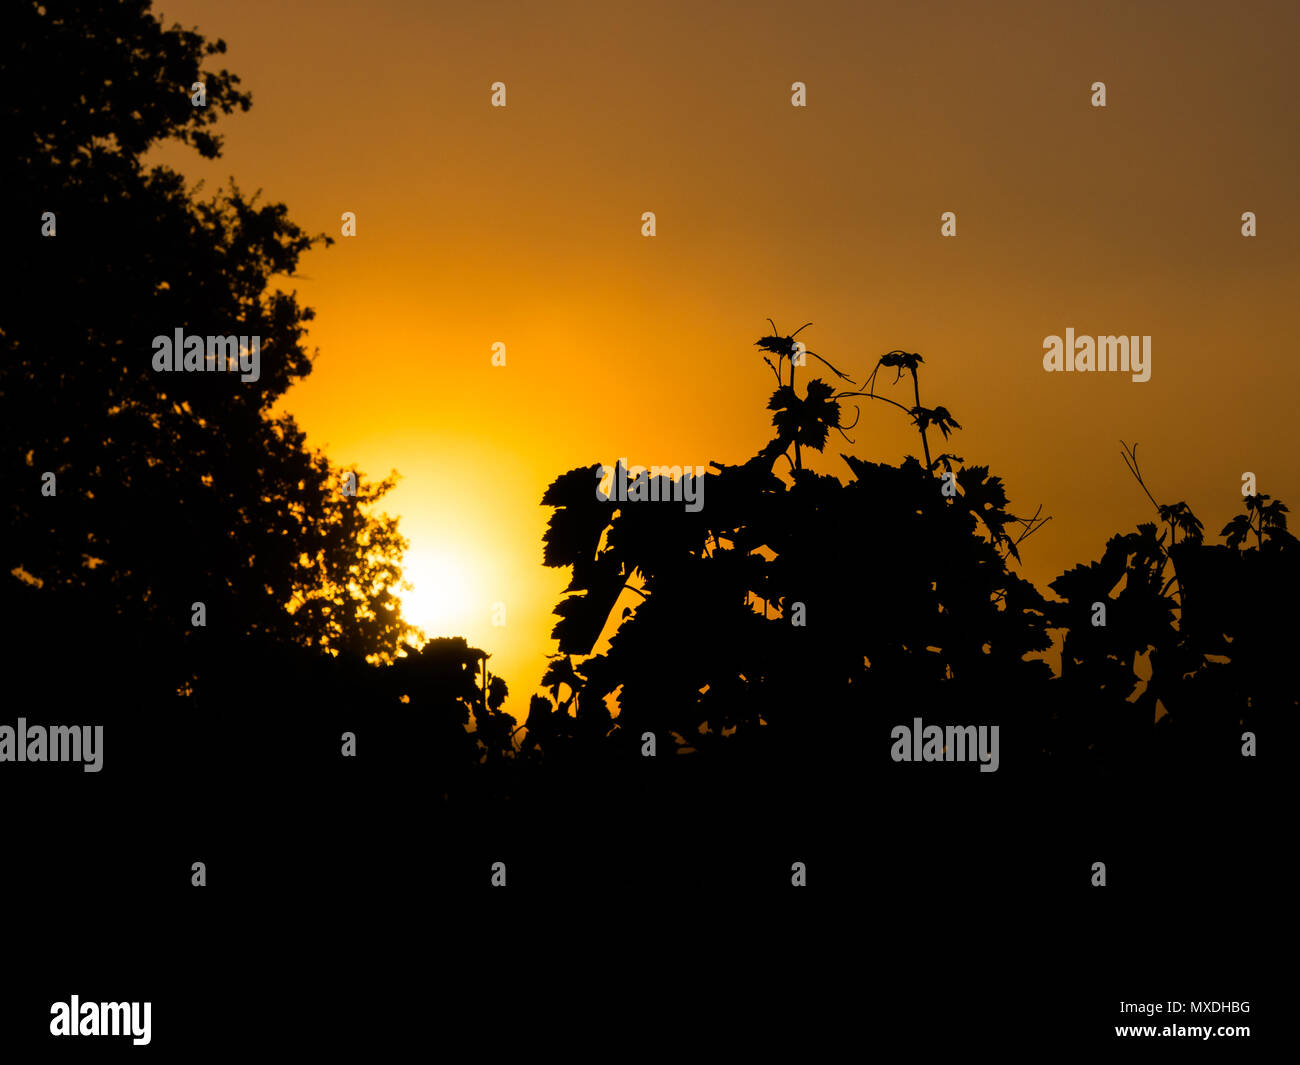 Grape vines in a French vineyard silhouetted against a golden sunset sky Stock Photo